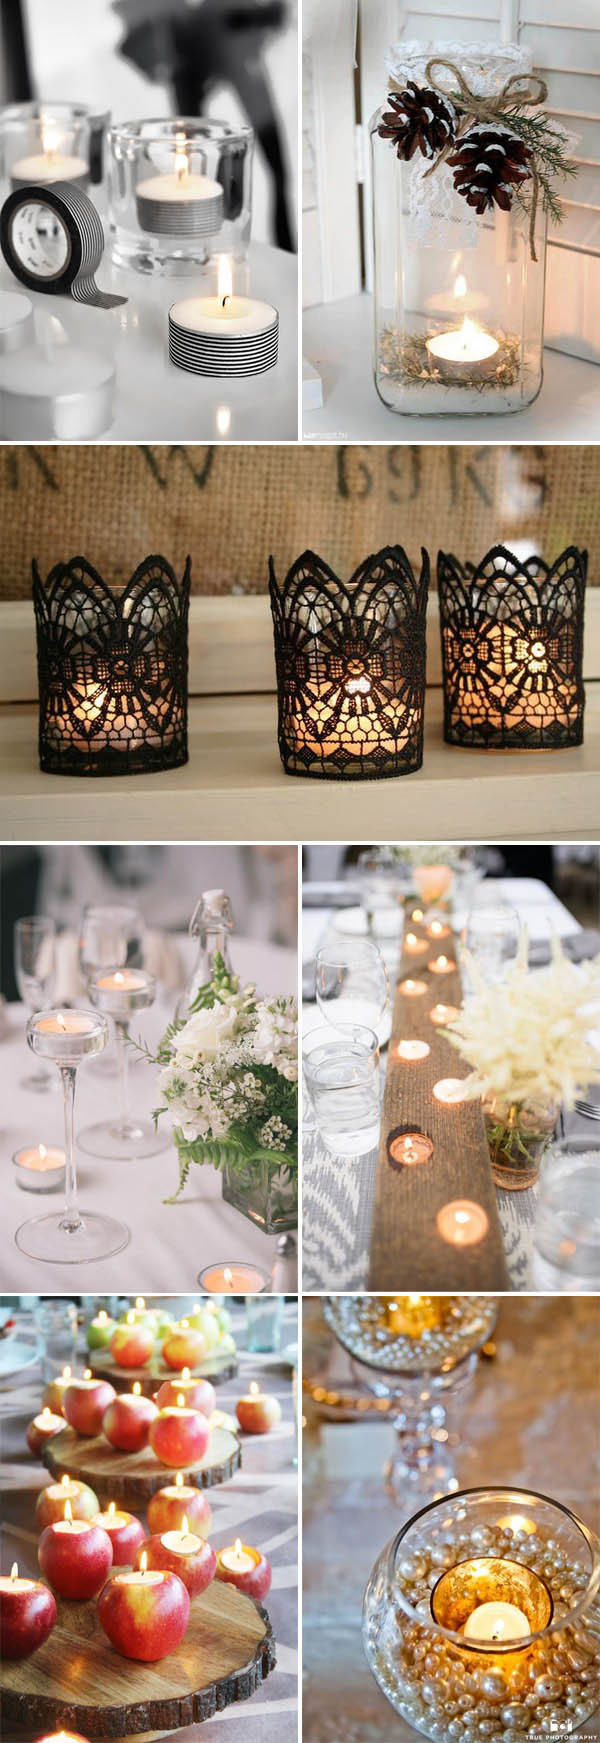 Best ideas about Cheap DIY Wedding . Save or Pin Cheap Decorative Candle Wedding Favors and DIY Candle Now.